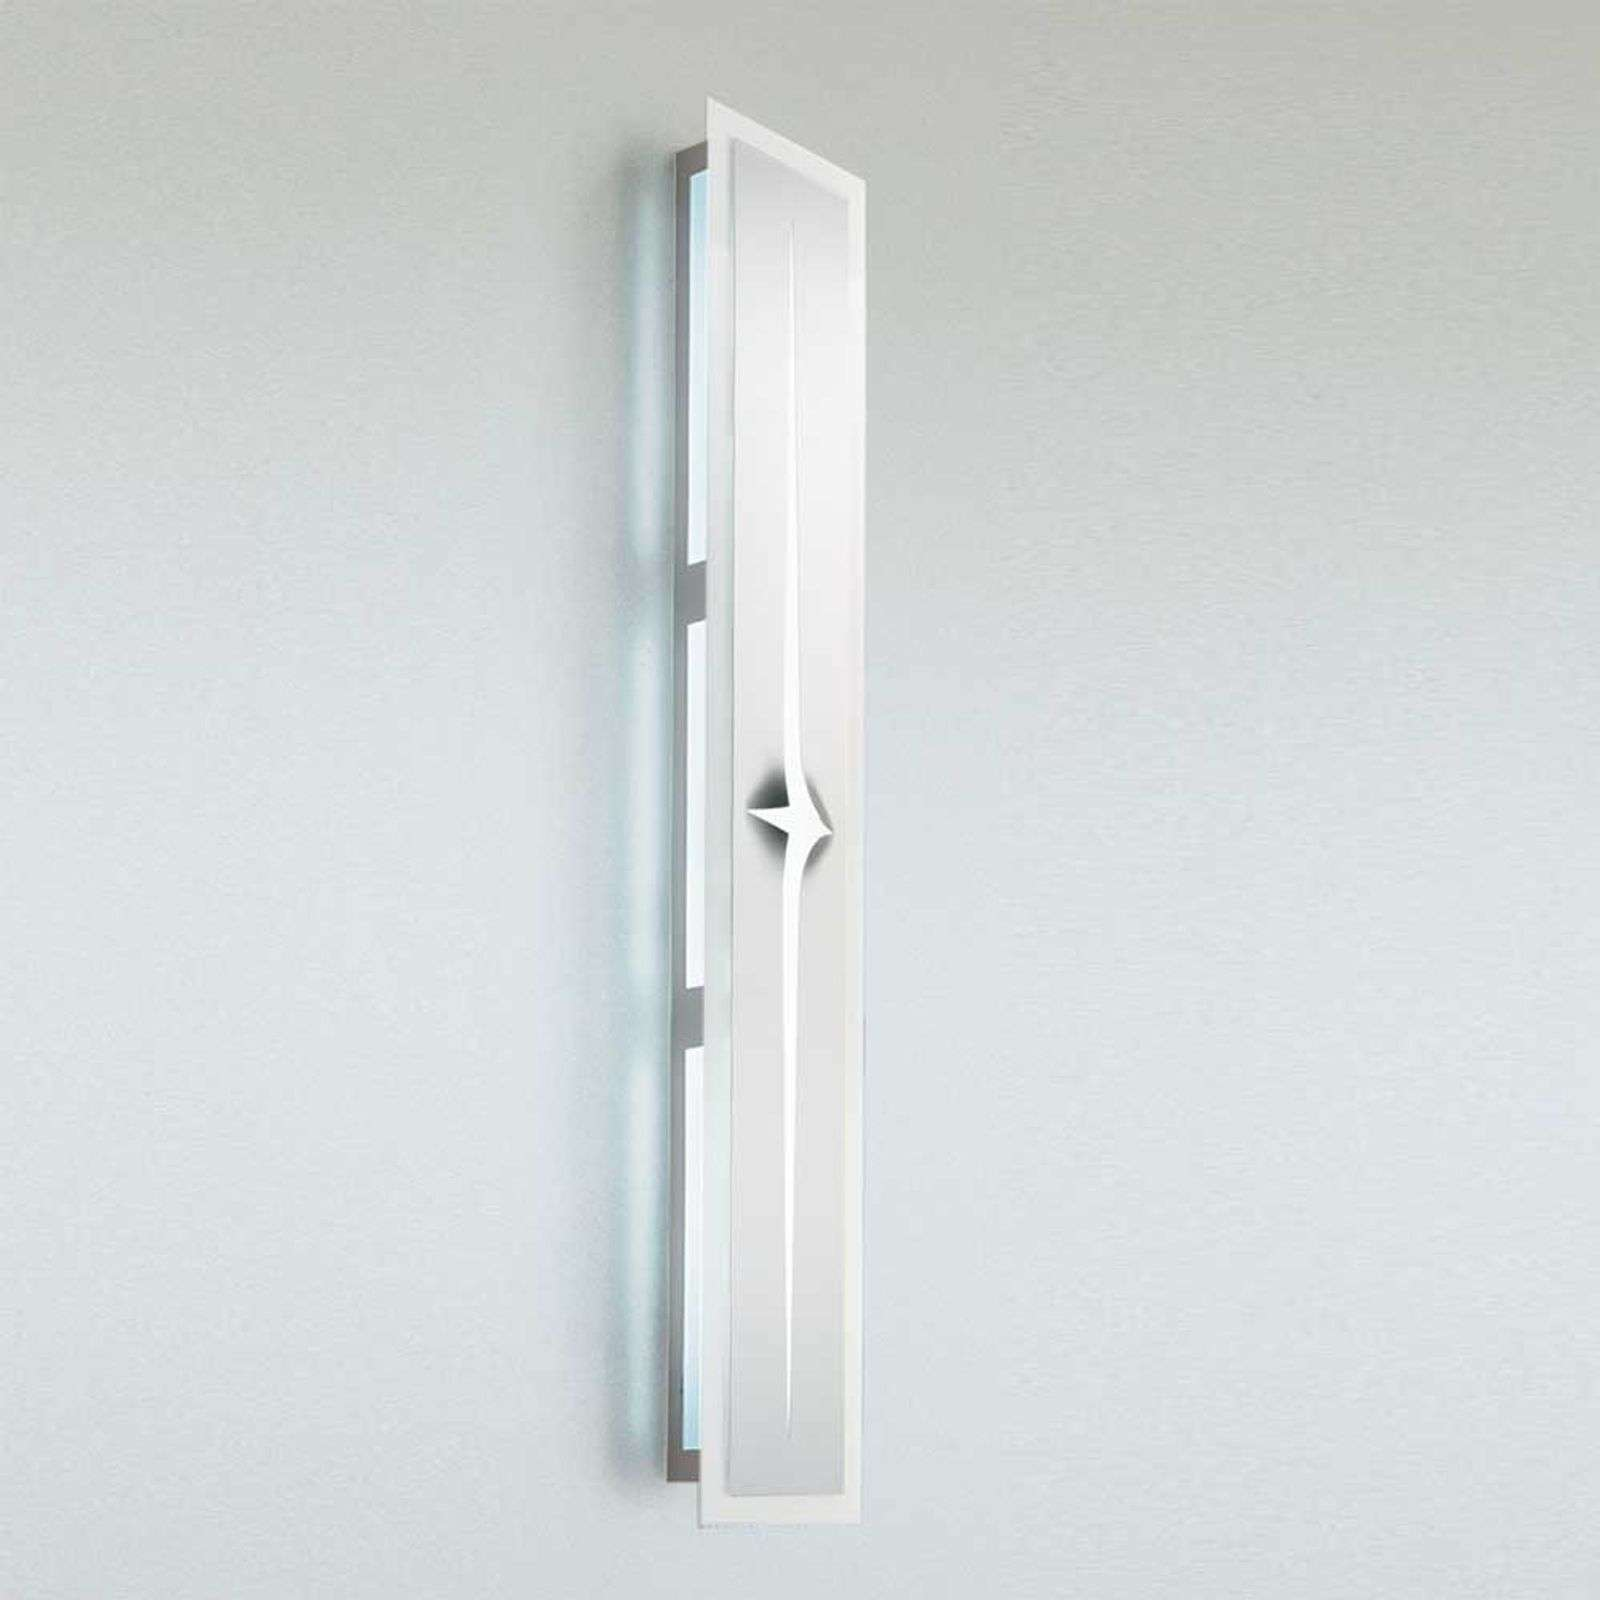 Lámpara de pared creativa CROSS 8195 gris-blanco